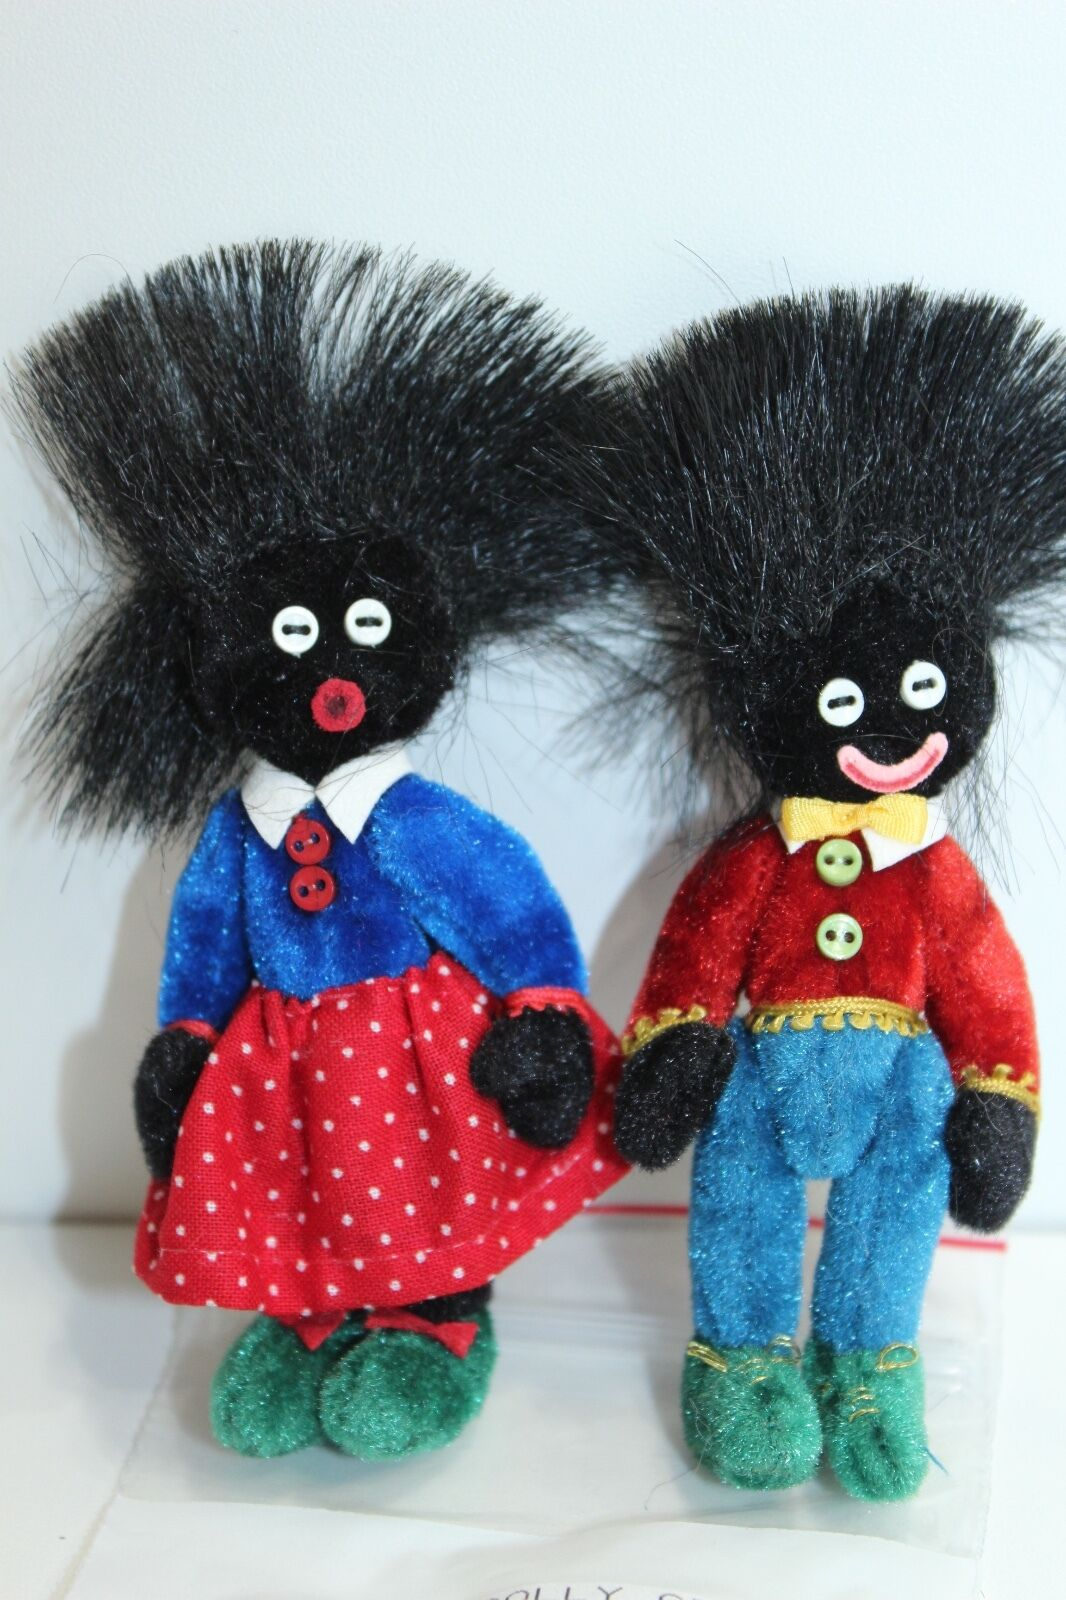 Little Gem Teddy Bears Boy and Girl Colorful Outfits Tall Hair Pair Set of 2